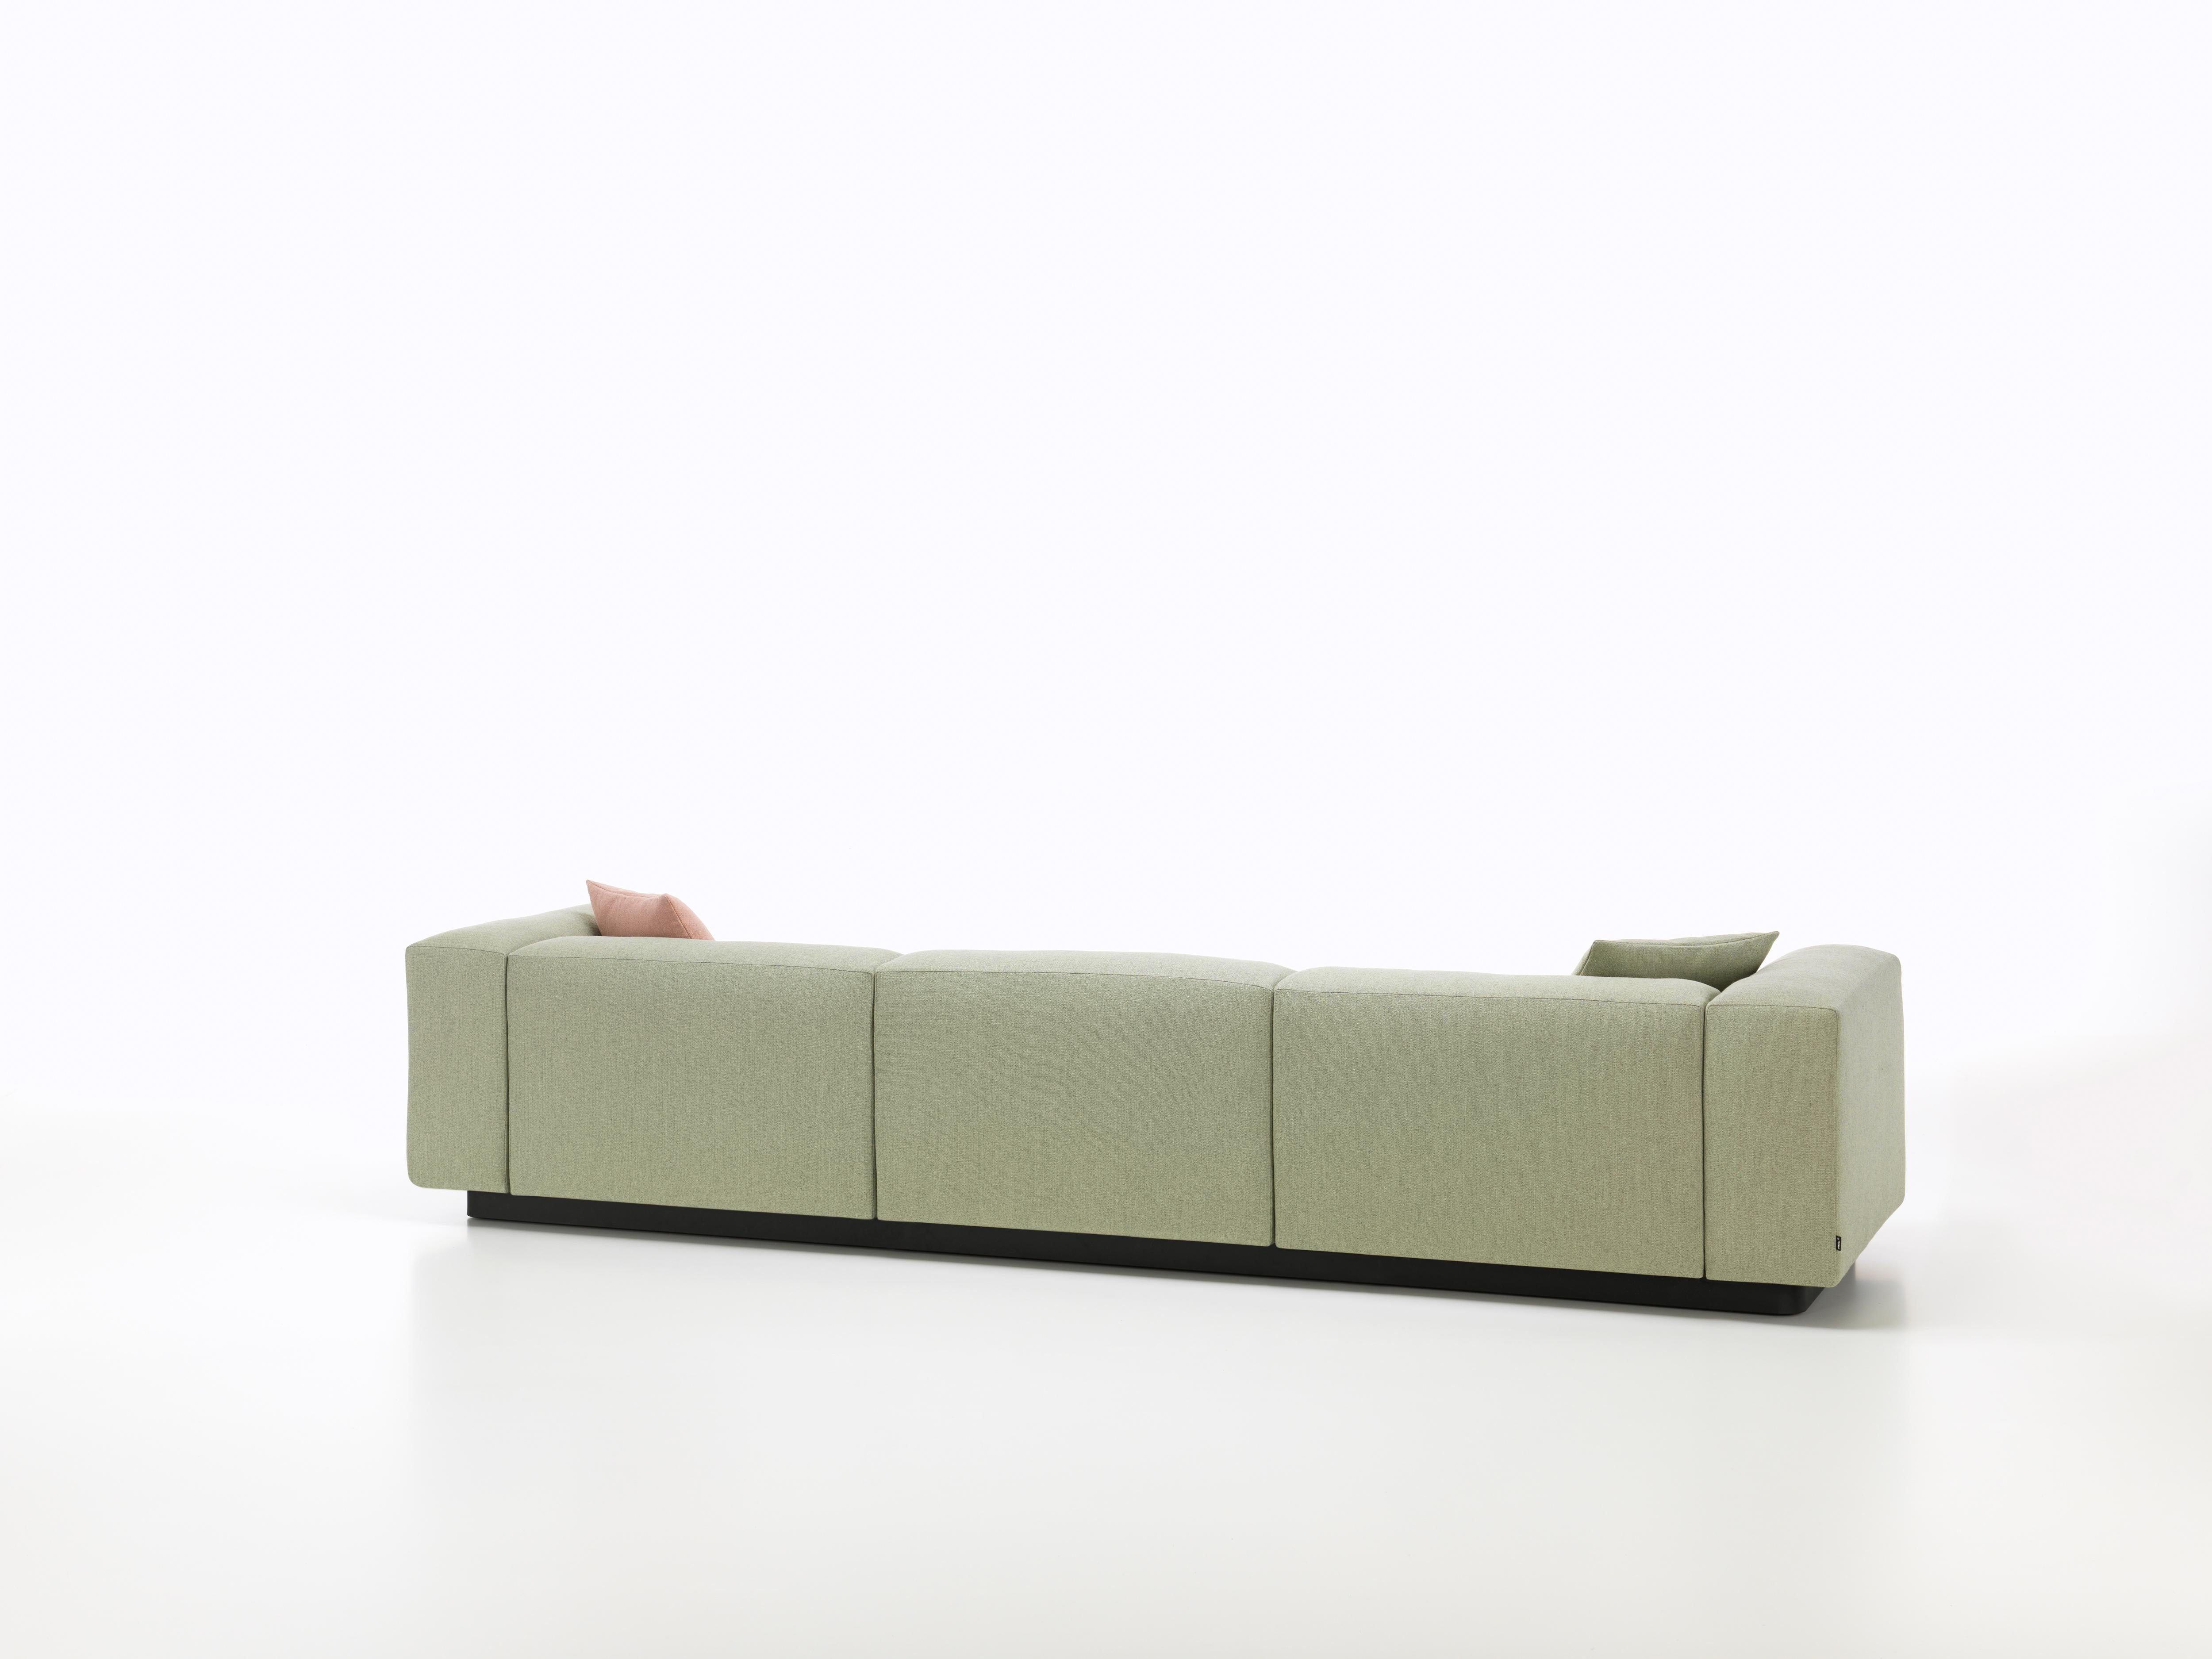 Vitra Soft Modular 3 Seat Sofa In Sage And Pebble Dumet By Jasper Morrison For Sale At 1stdibs